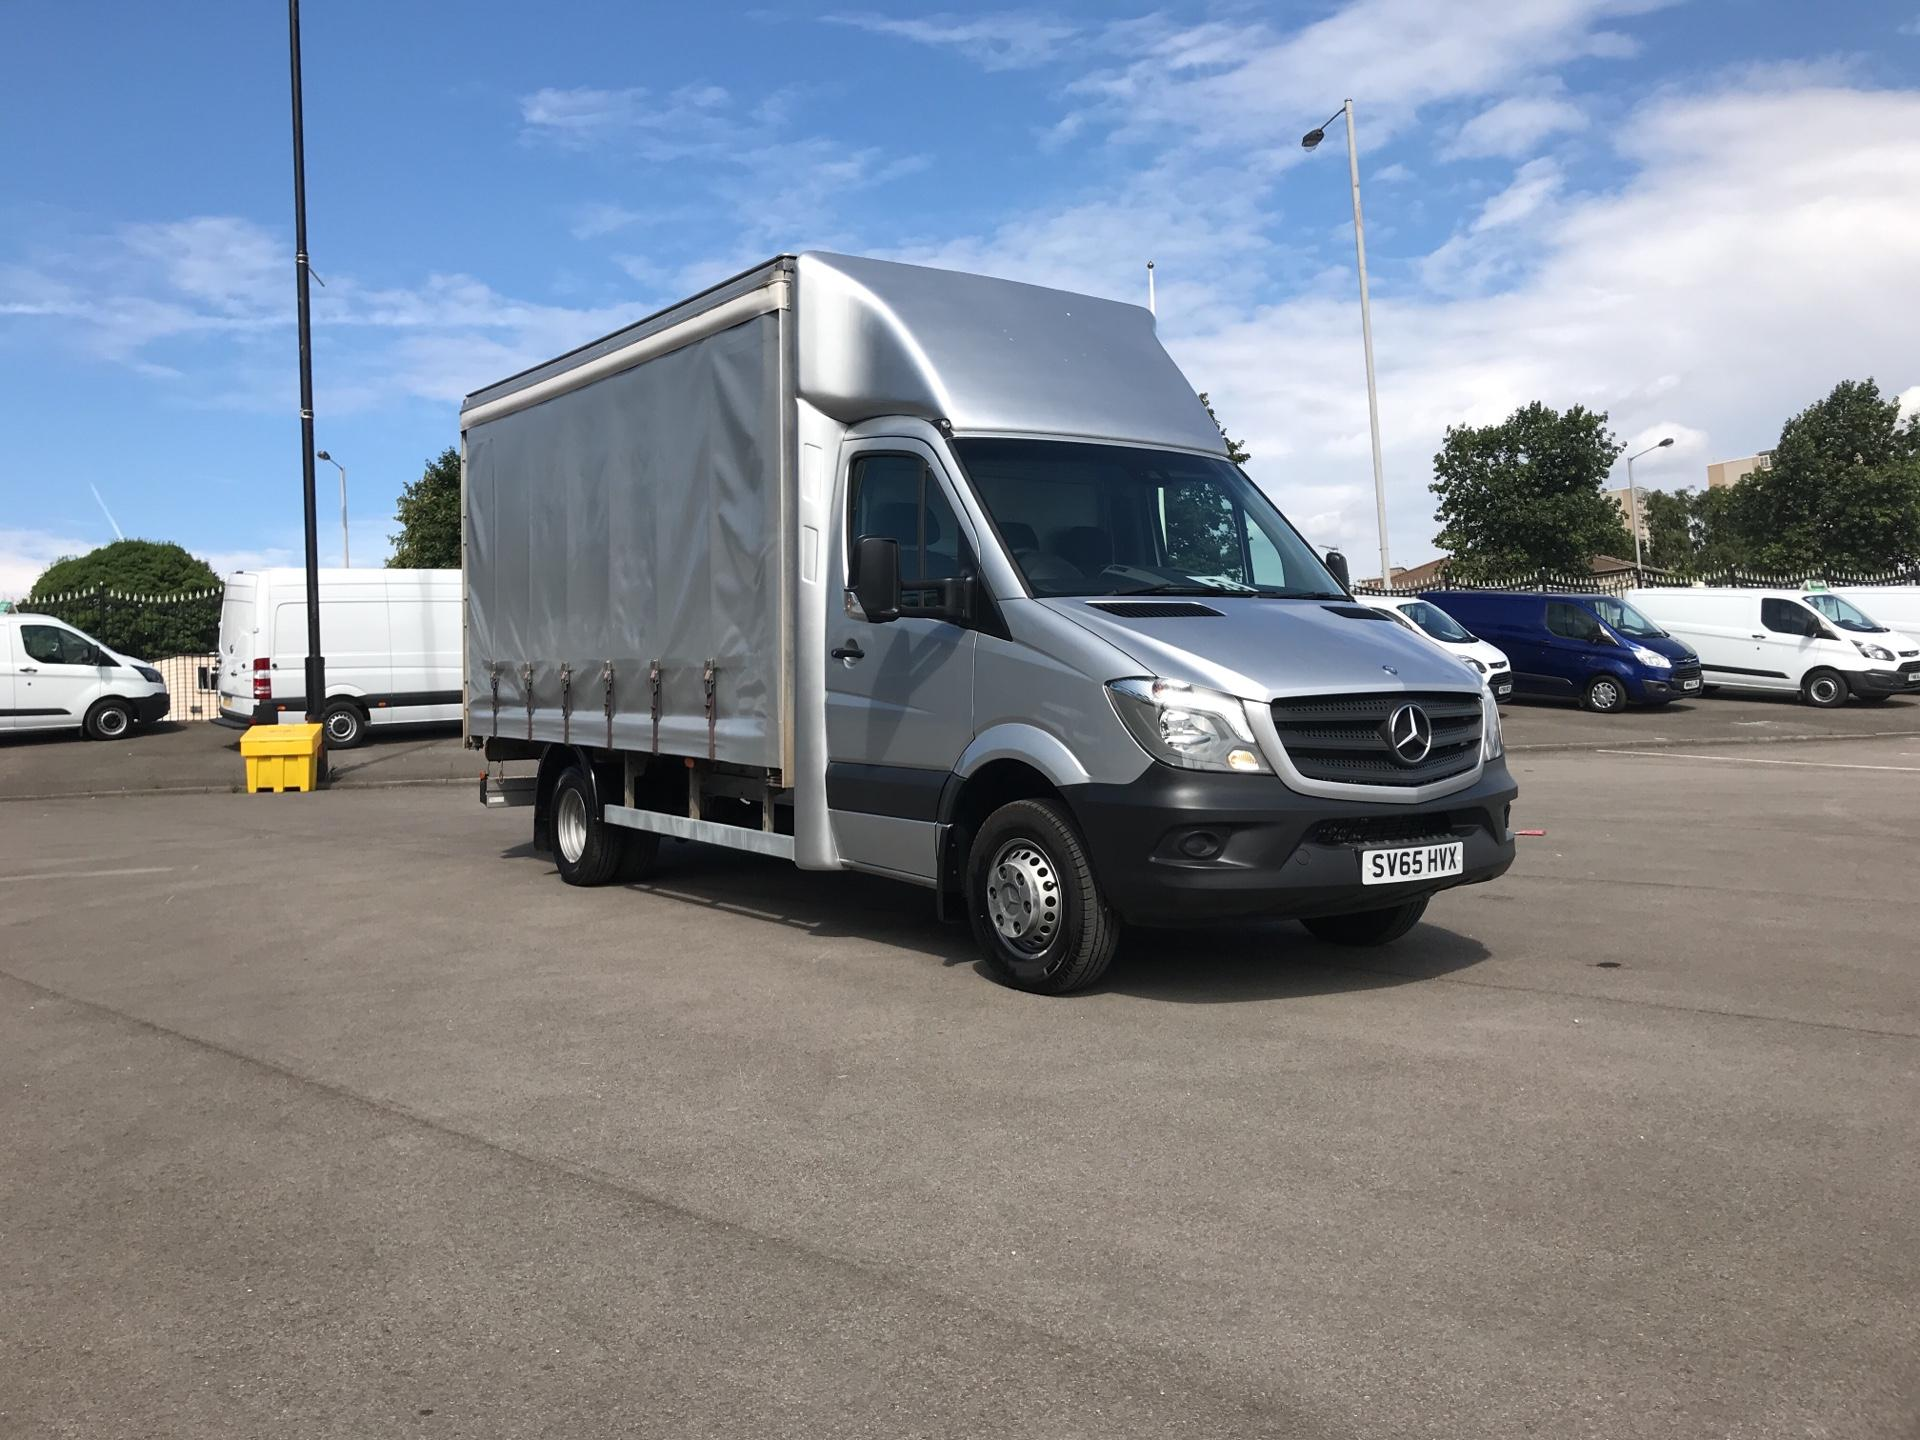 2015 Mercedes-Benz Sprinter 516 Cdi LUTON CURTAINSIDE DUAL WHEEL (SV65HVX)